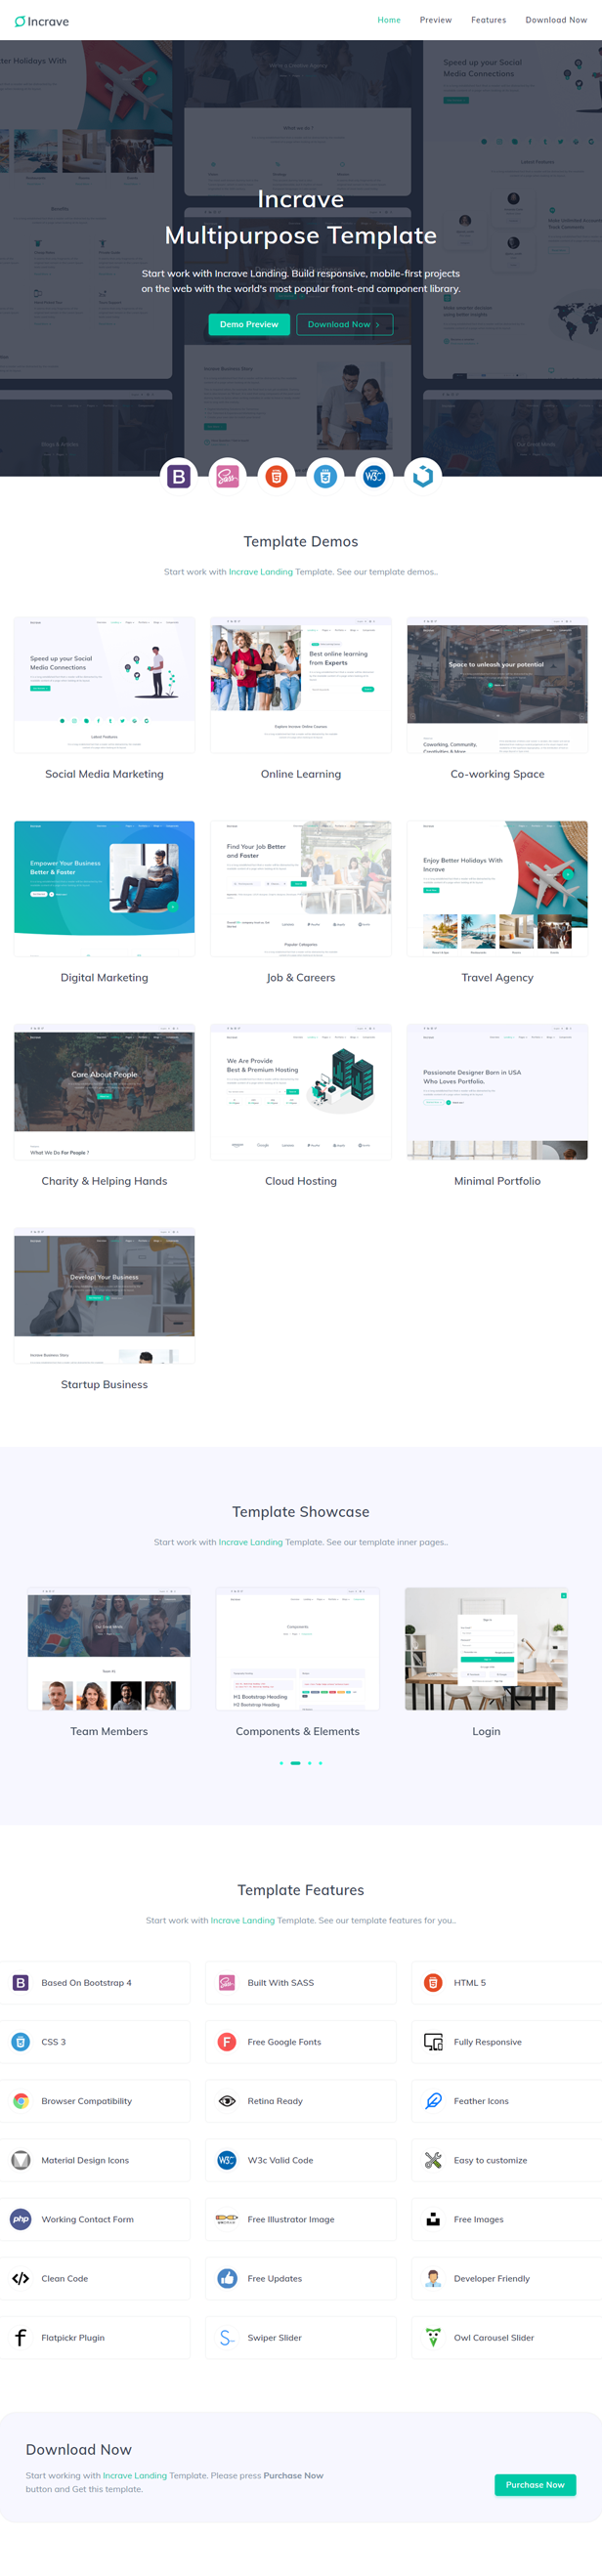 Incrave - Creative Landing Page Template - 1